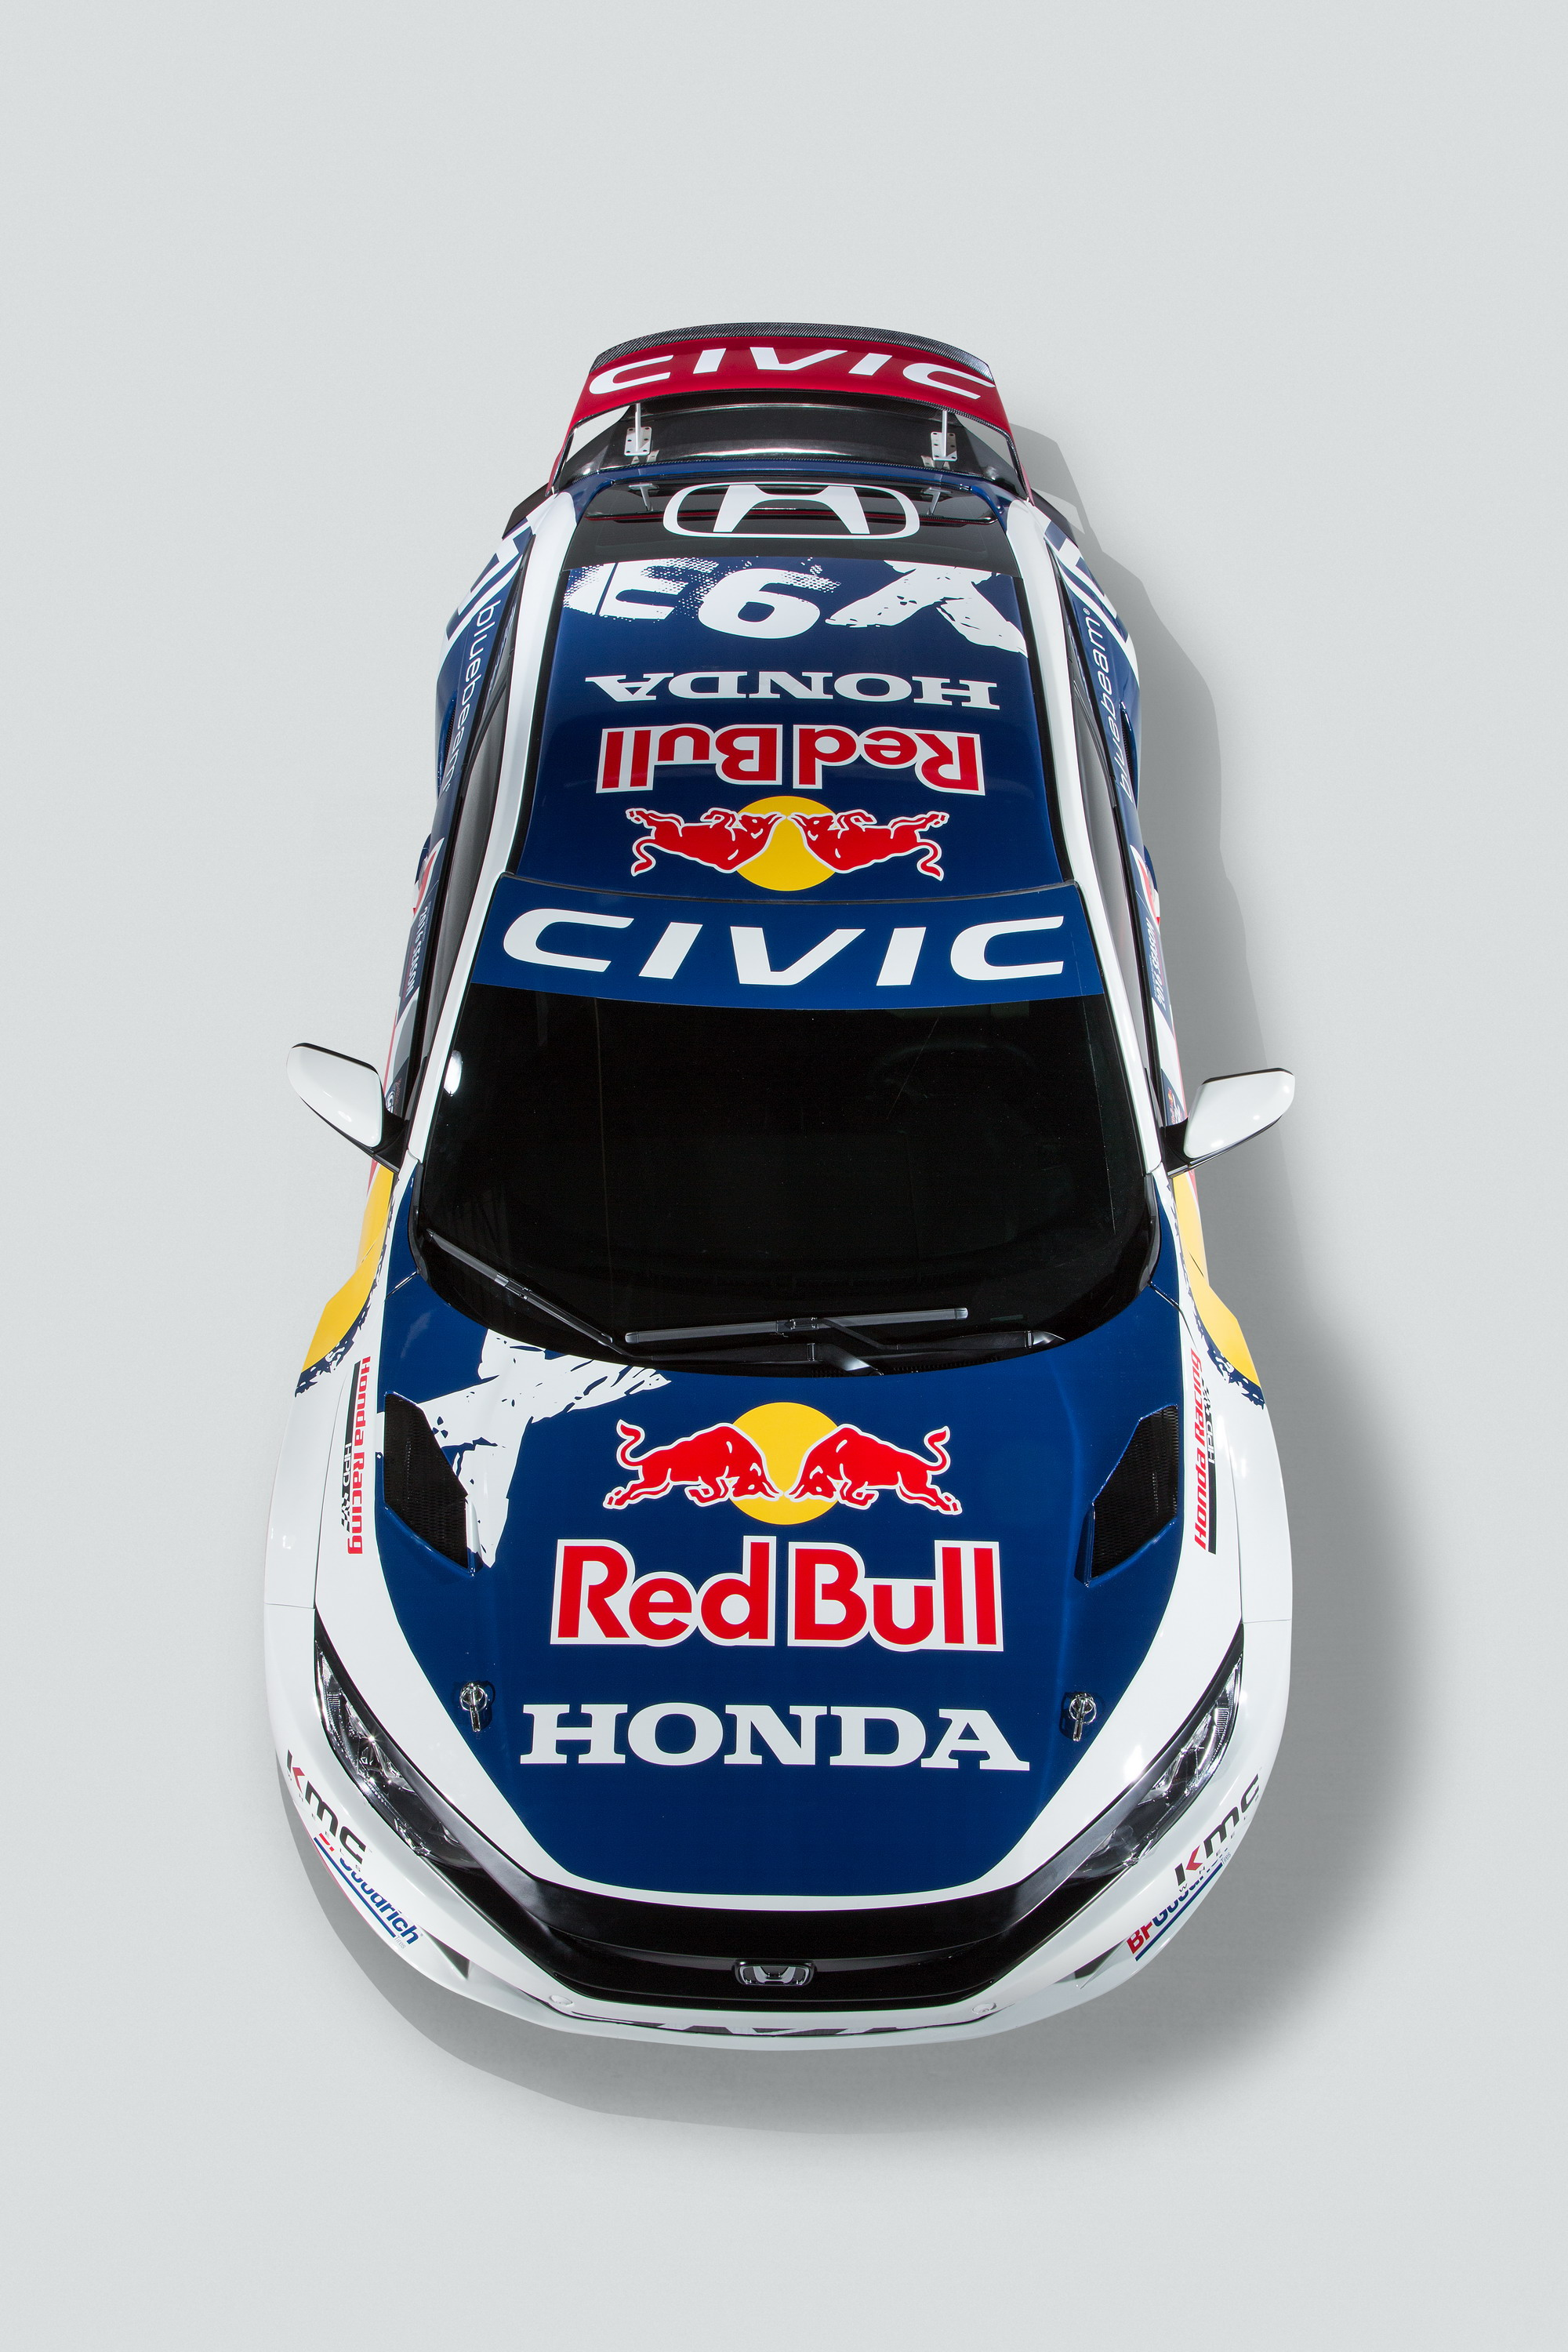 2016 Honda Civic Coupe GRC Competitive Race Car | Top Speed. »